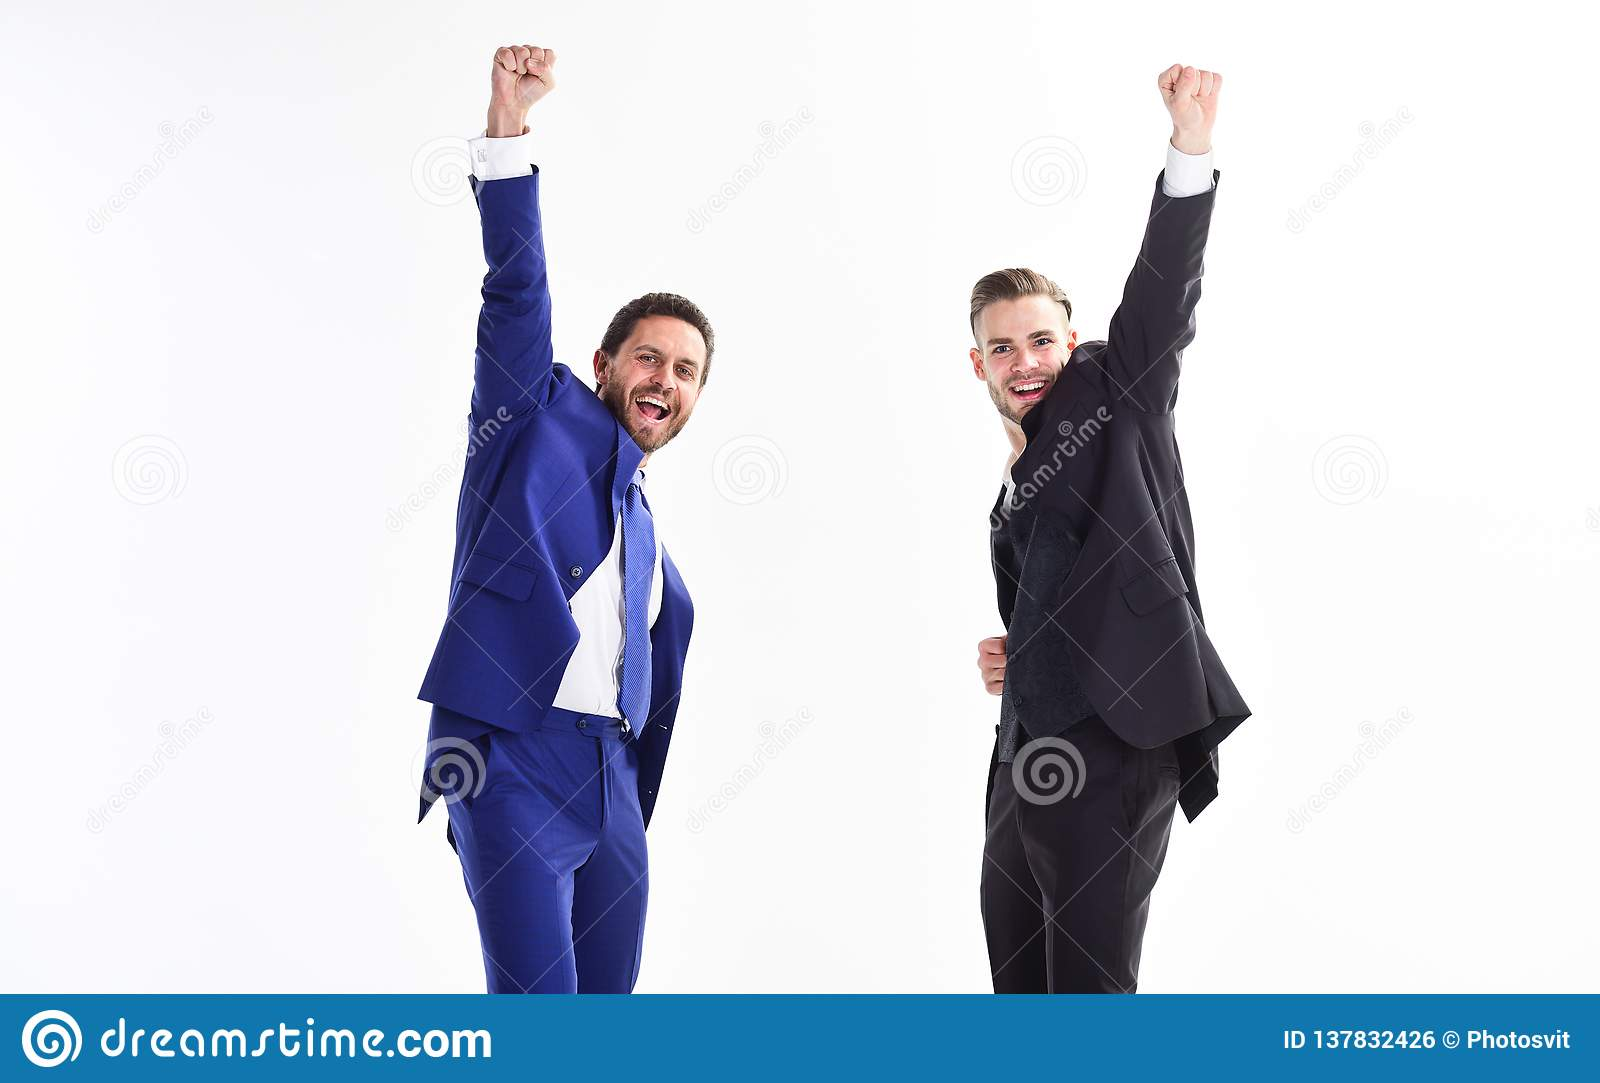 Business Achievement Concept Business Success Office Party Celebrate Successful Deal Men Happy Emotional Celebrate Stock Photo Image Of Professional Office 137832426